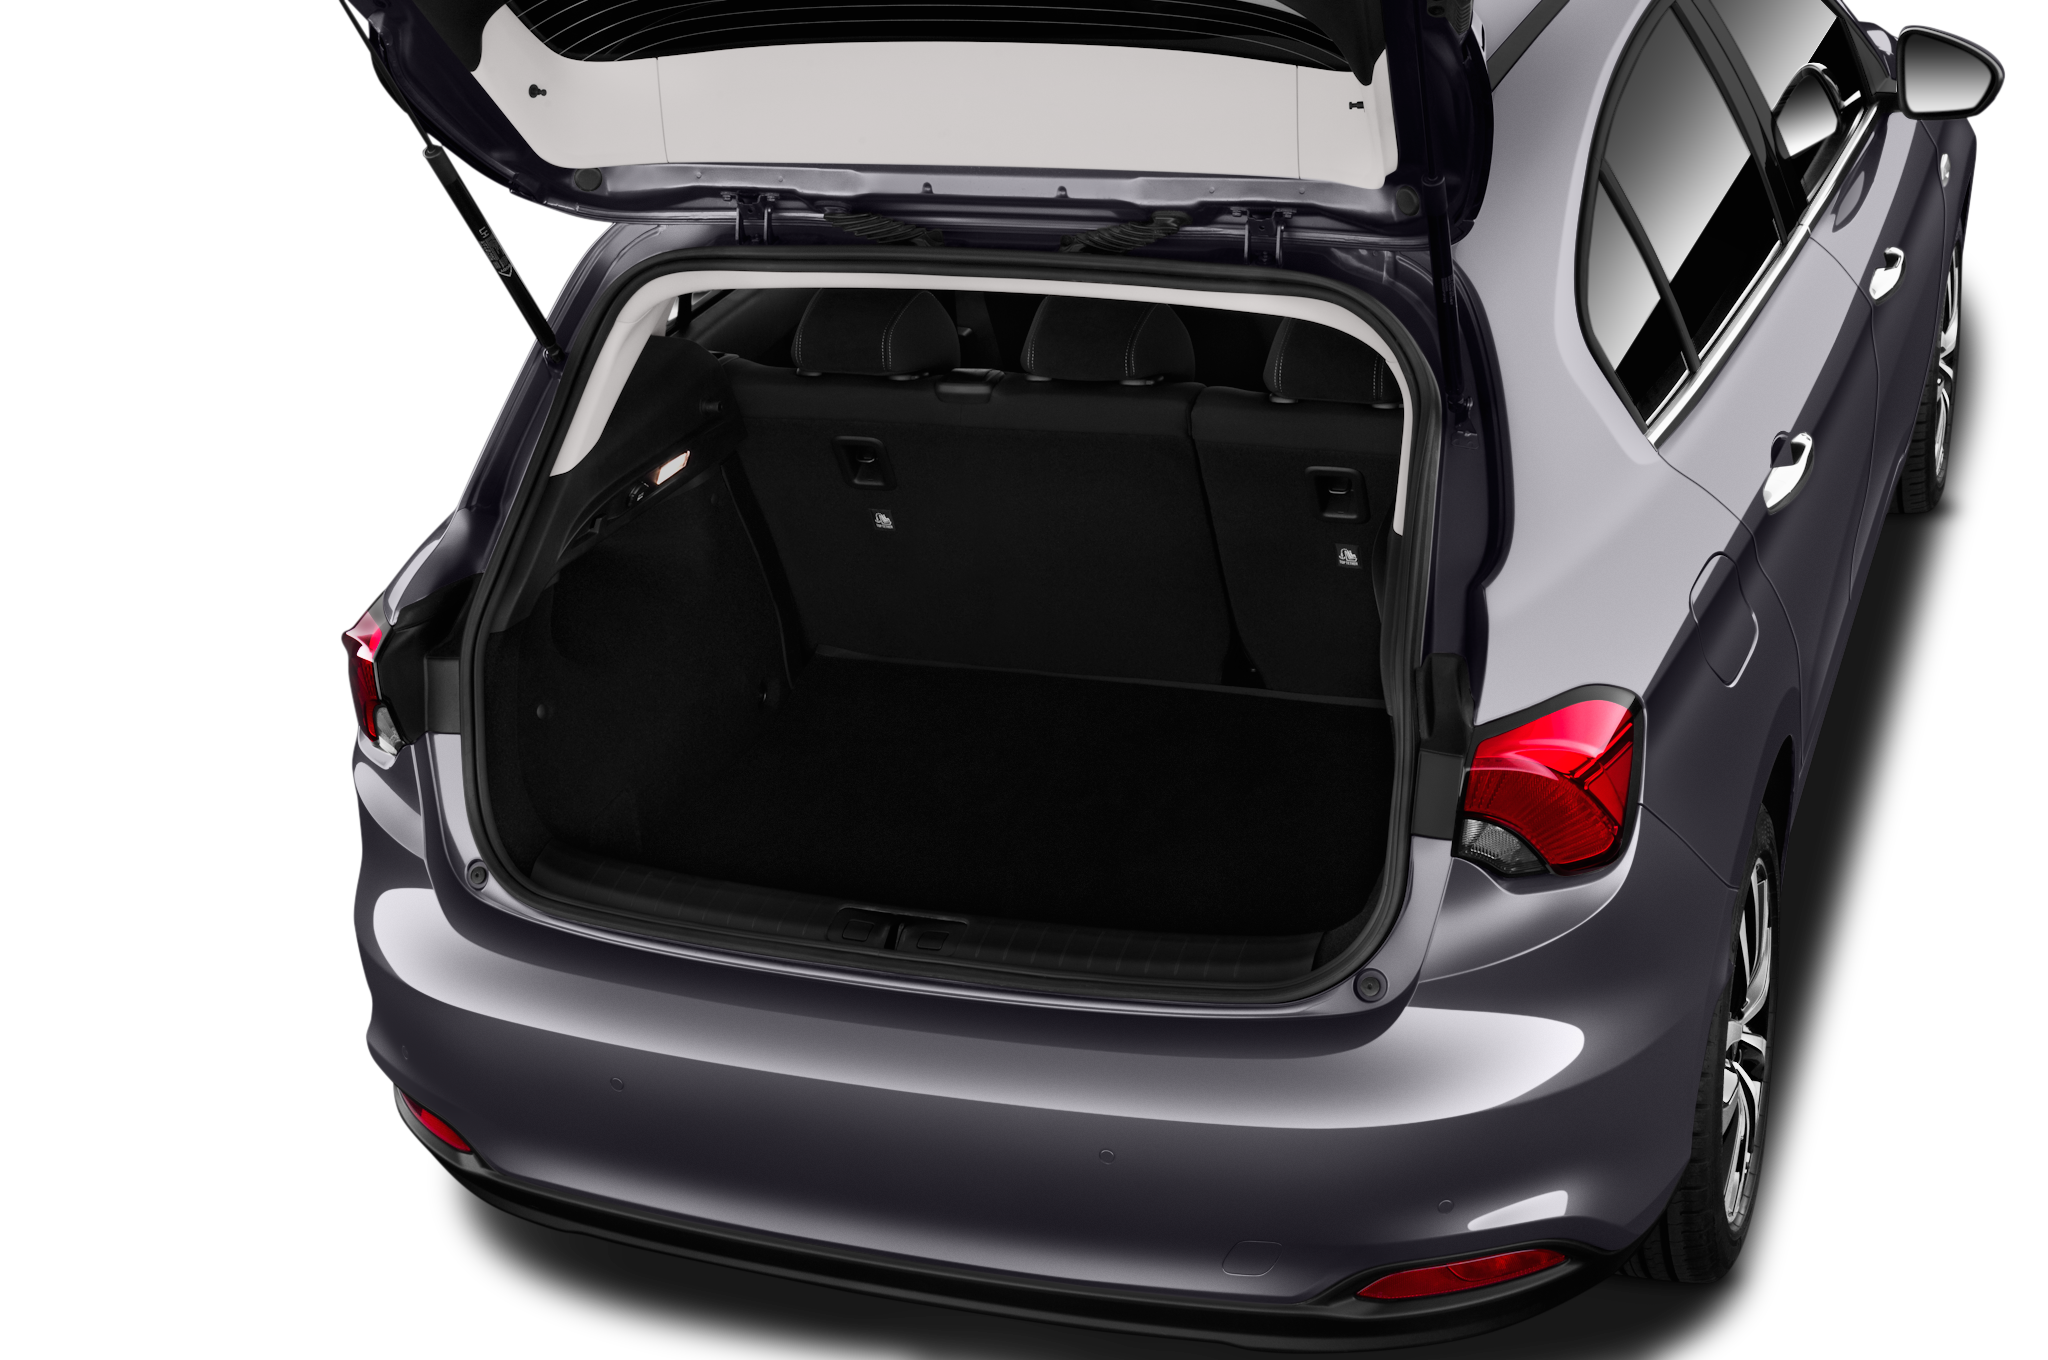 Fiat Tipo company car boot space